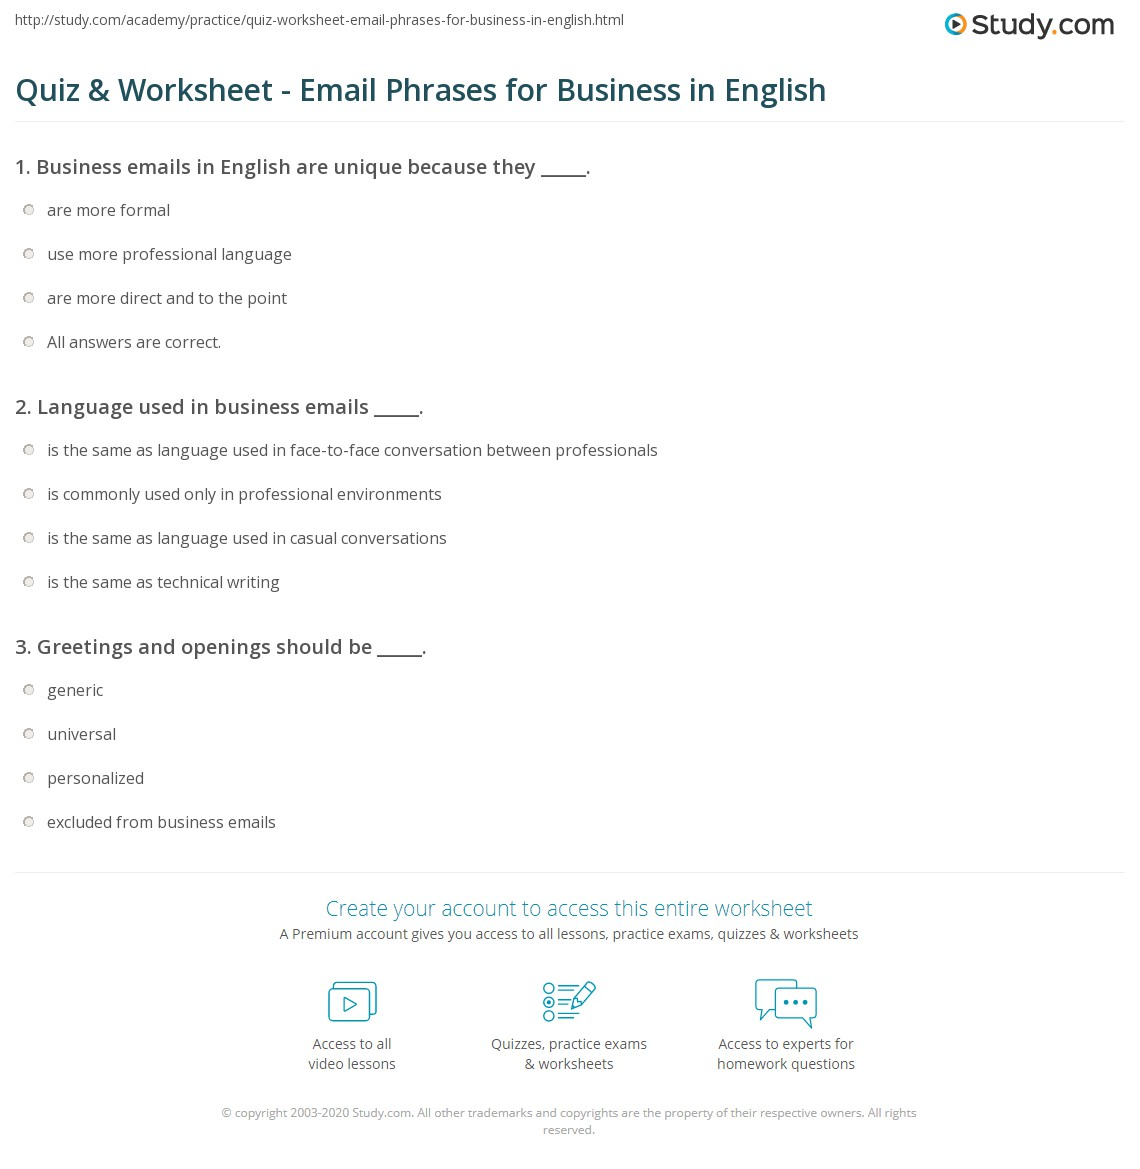 Quiz worksheet email phrases for business in english study language used in business emails m4hsunfo